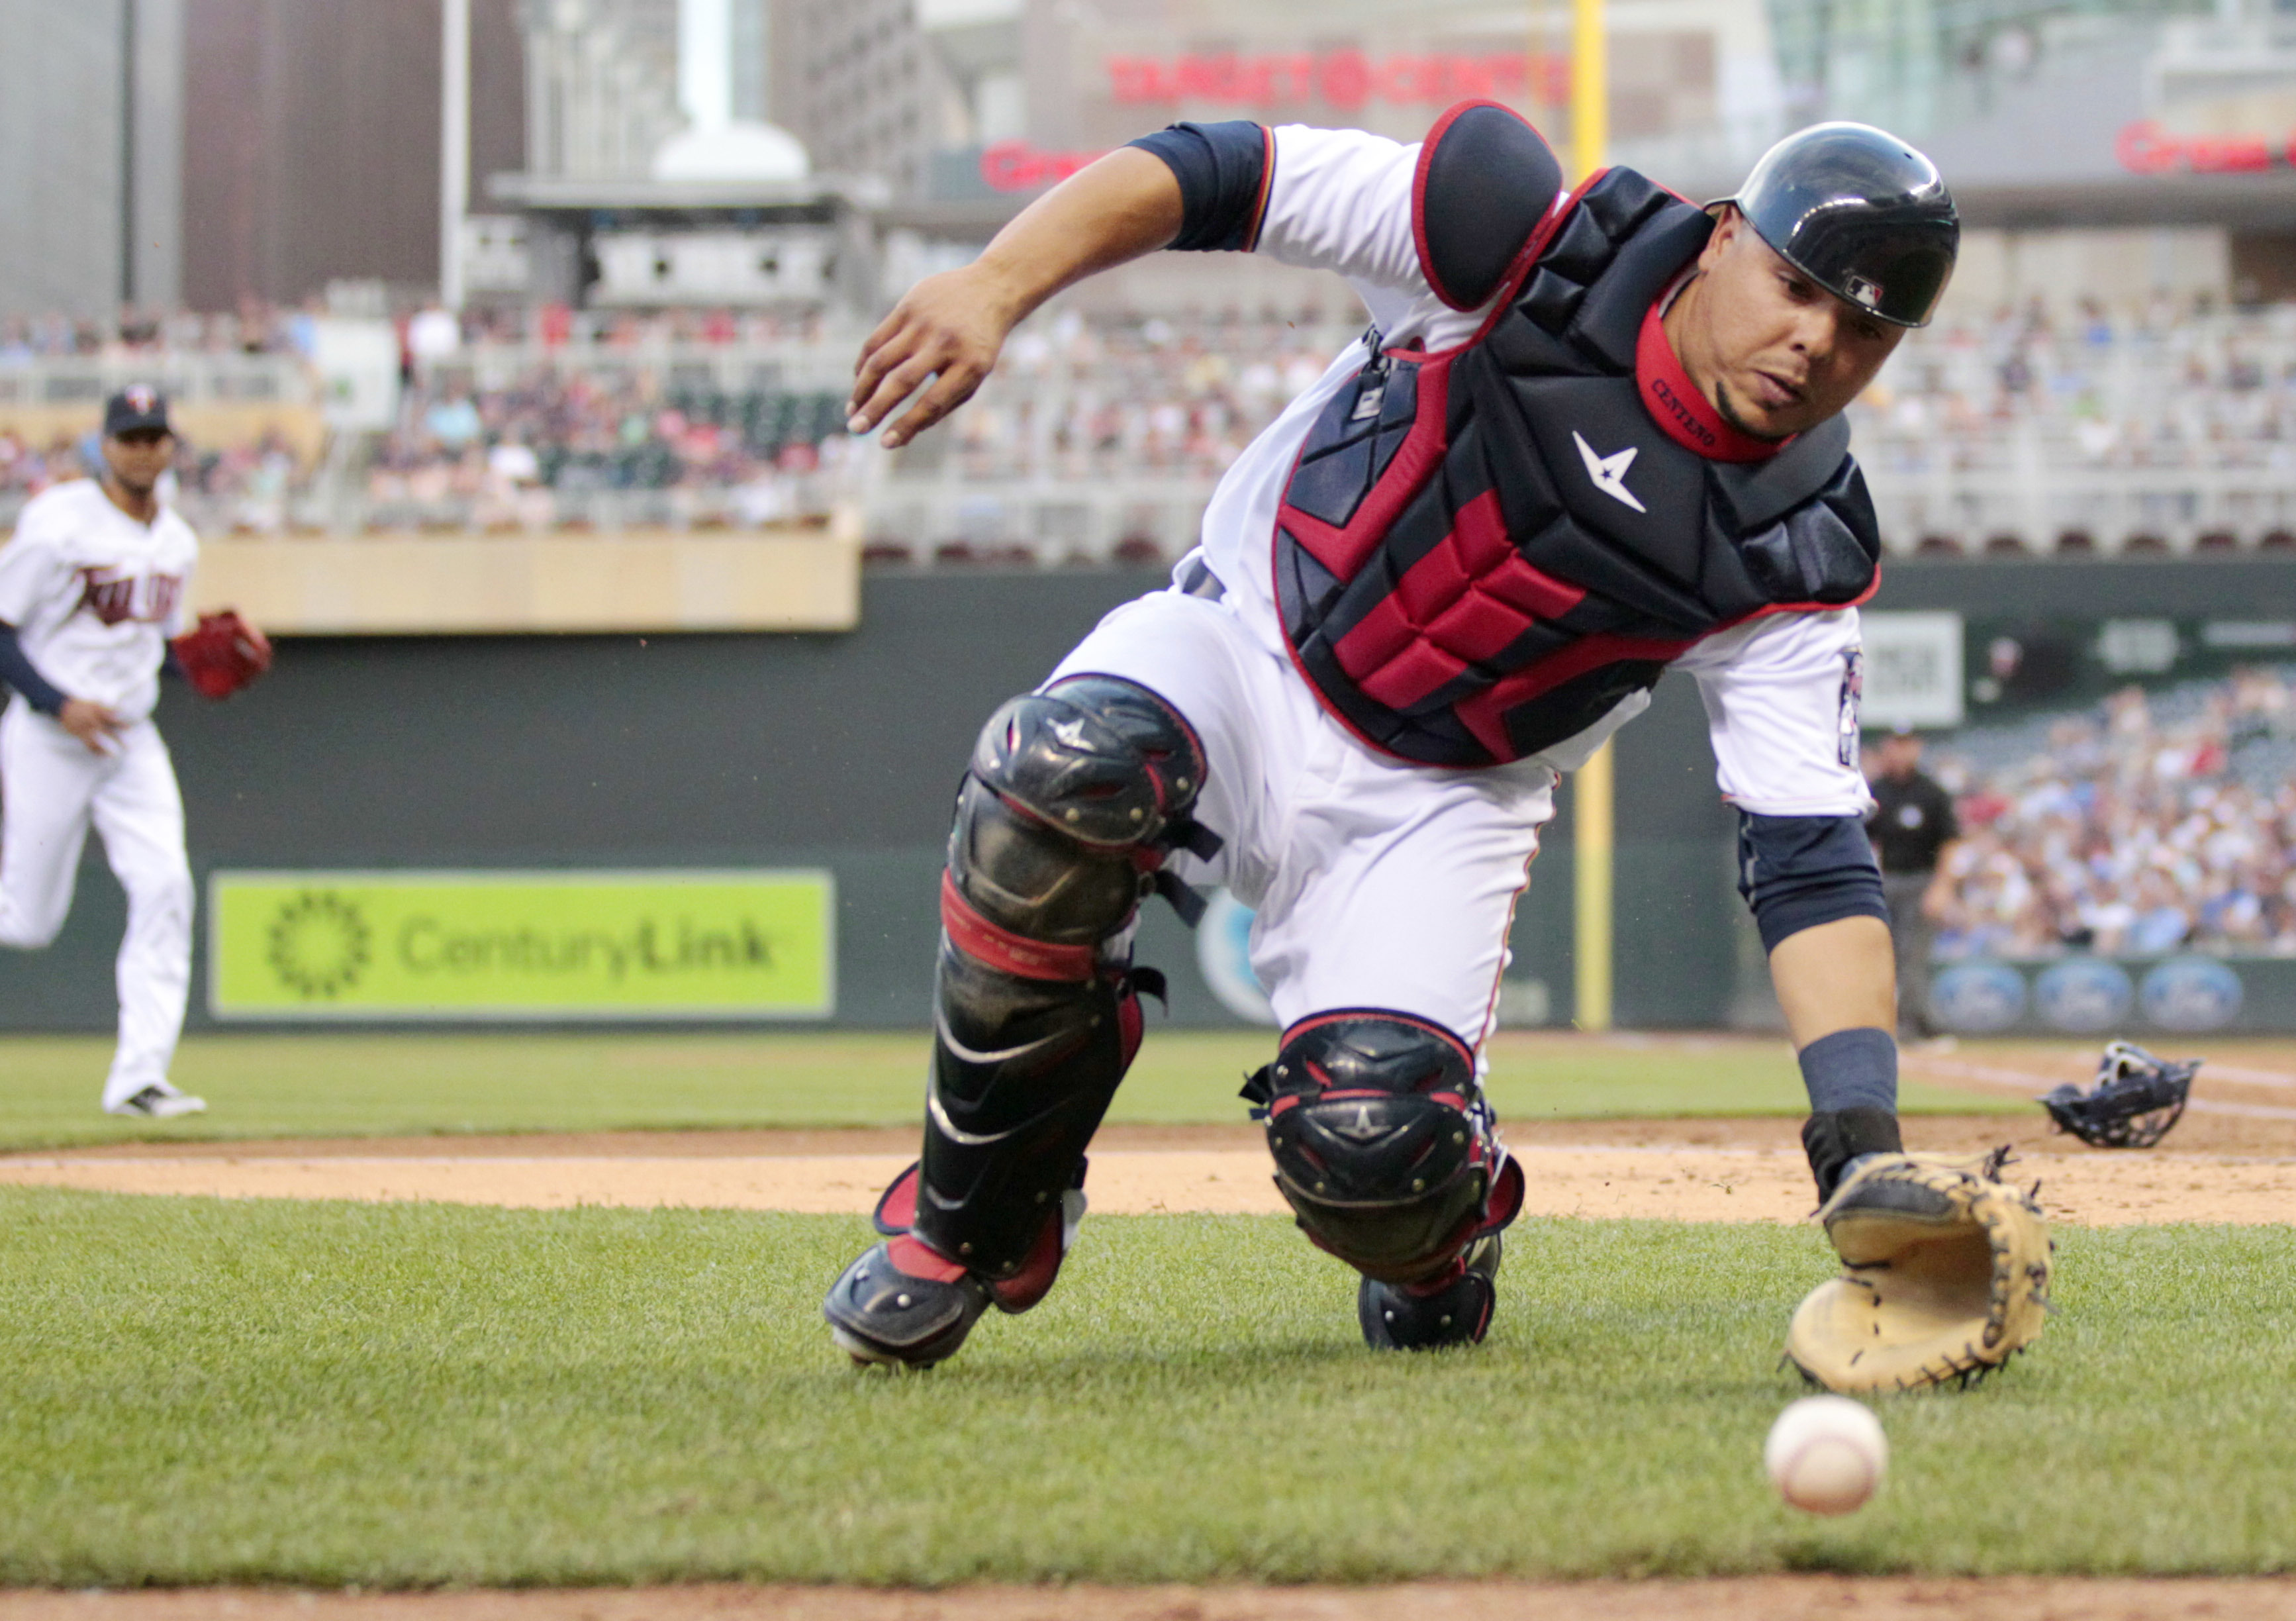 Minnesota Twins catcher Juan Centeno chases the ball down as Twins pitcher Ervin Santana runs to the plate too late to stop Kansas City Royals Cheslor Cuthbert from scoring in the fourth inning during a baseball game on Tuesday, May, 24, 2016 in Minneapol